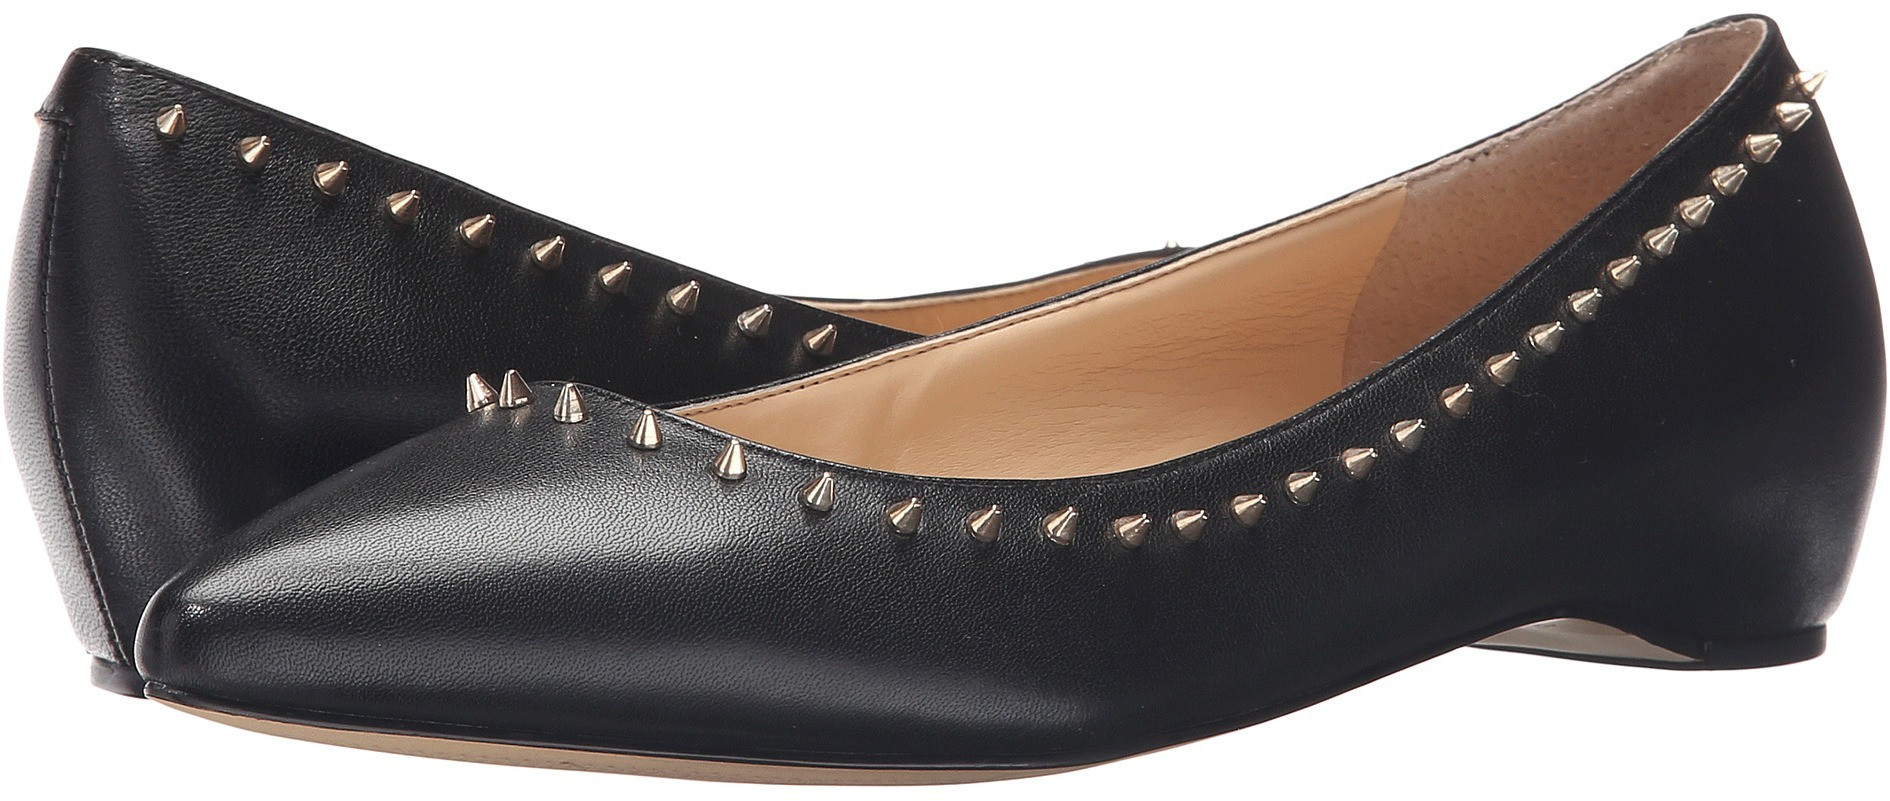 Ivanka Trump Cecille Black Leather